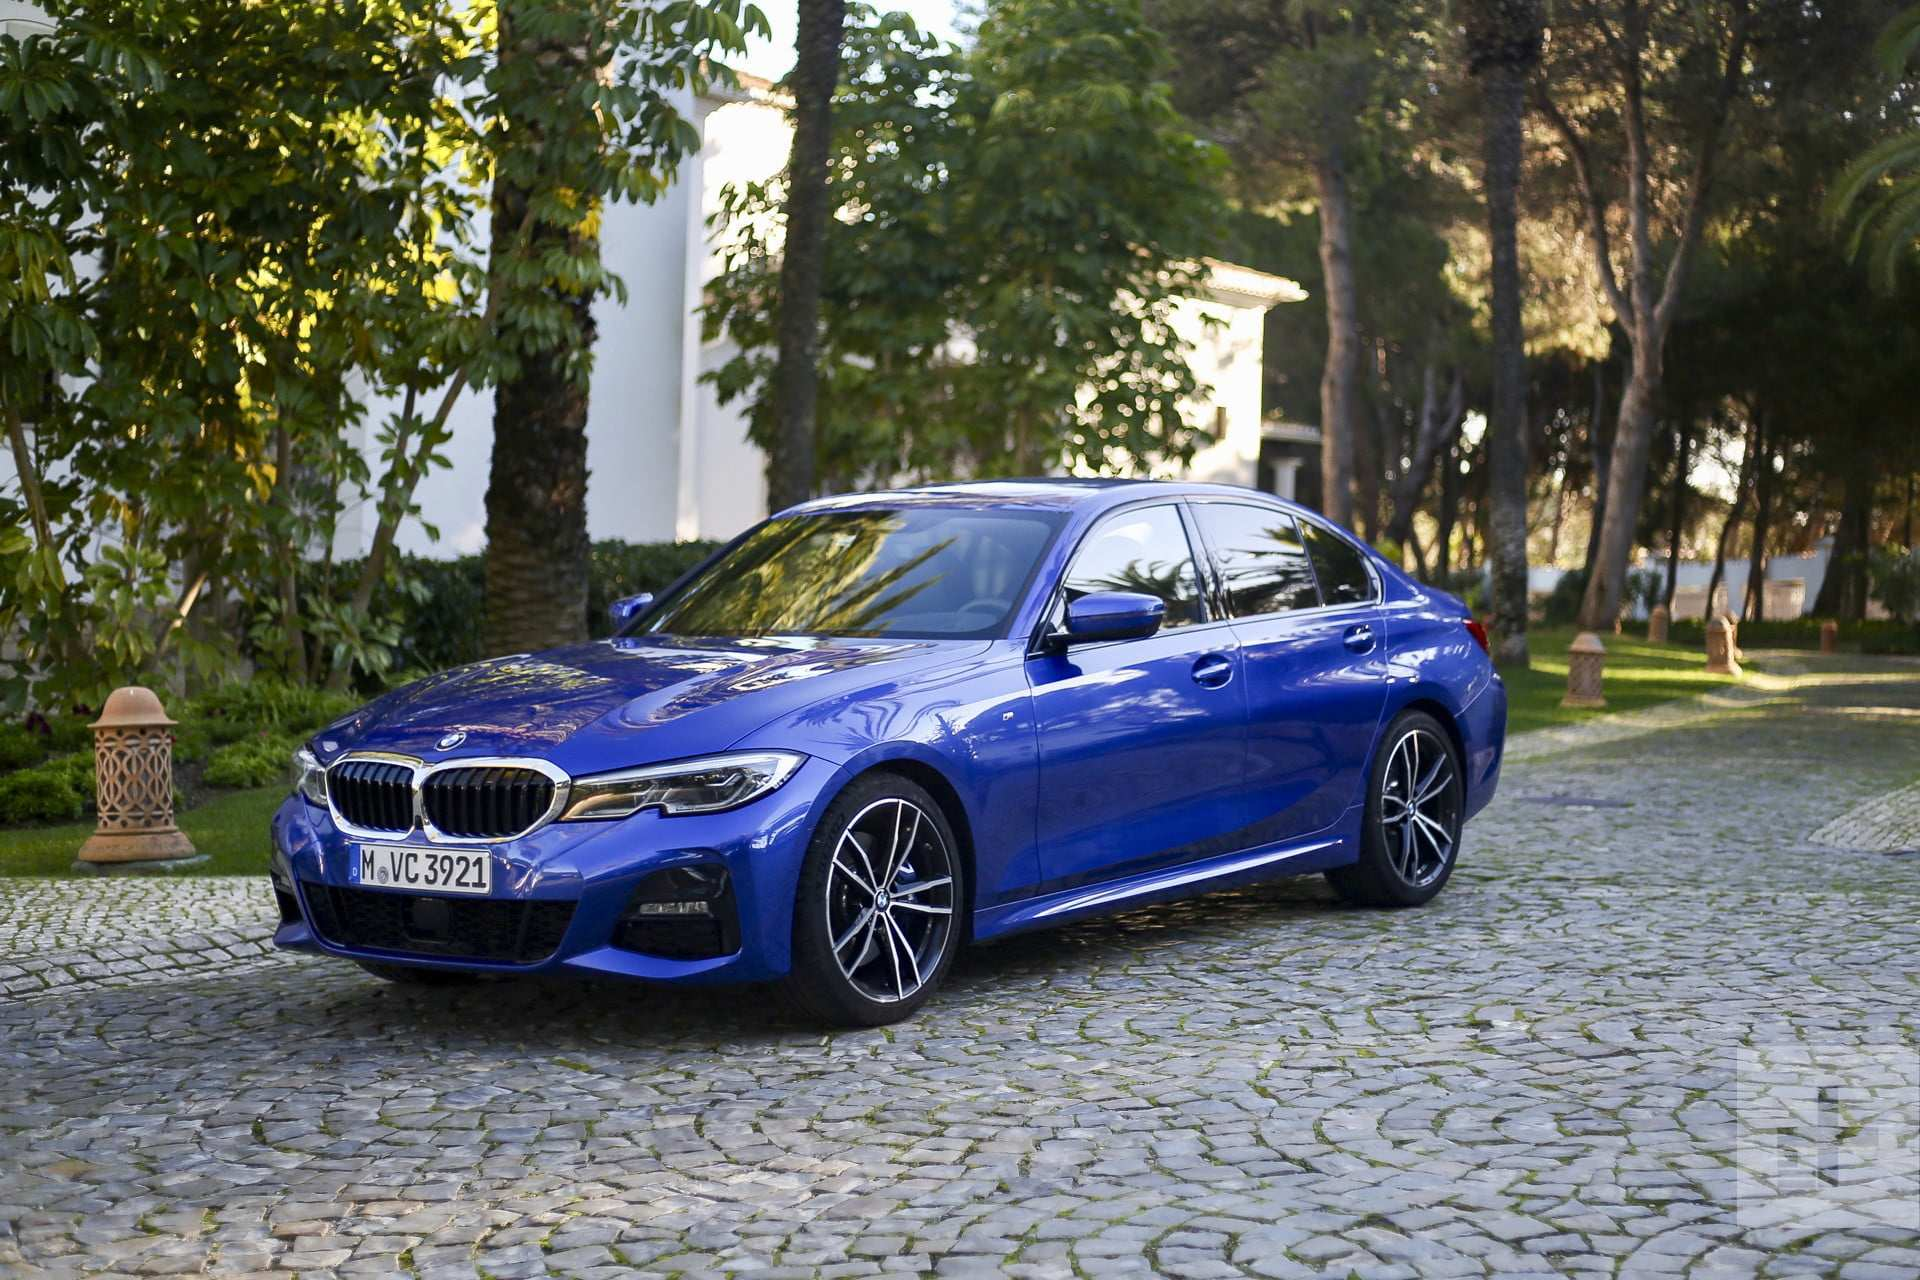 71 A 2020 BMW 3 Series Edrive Phev Release Date And Concept